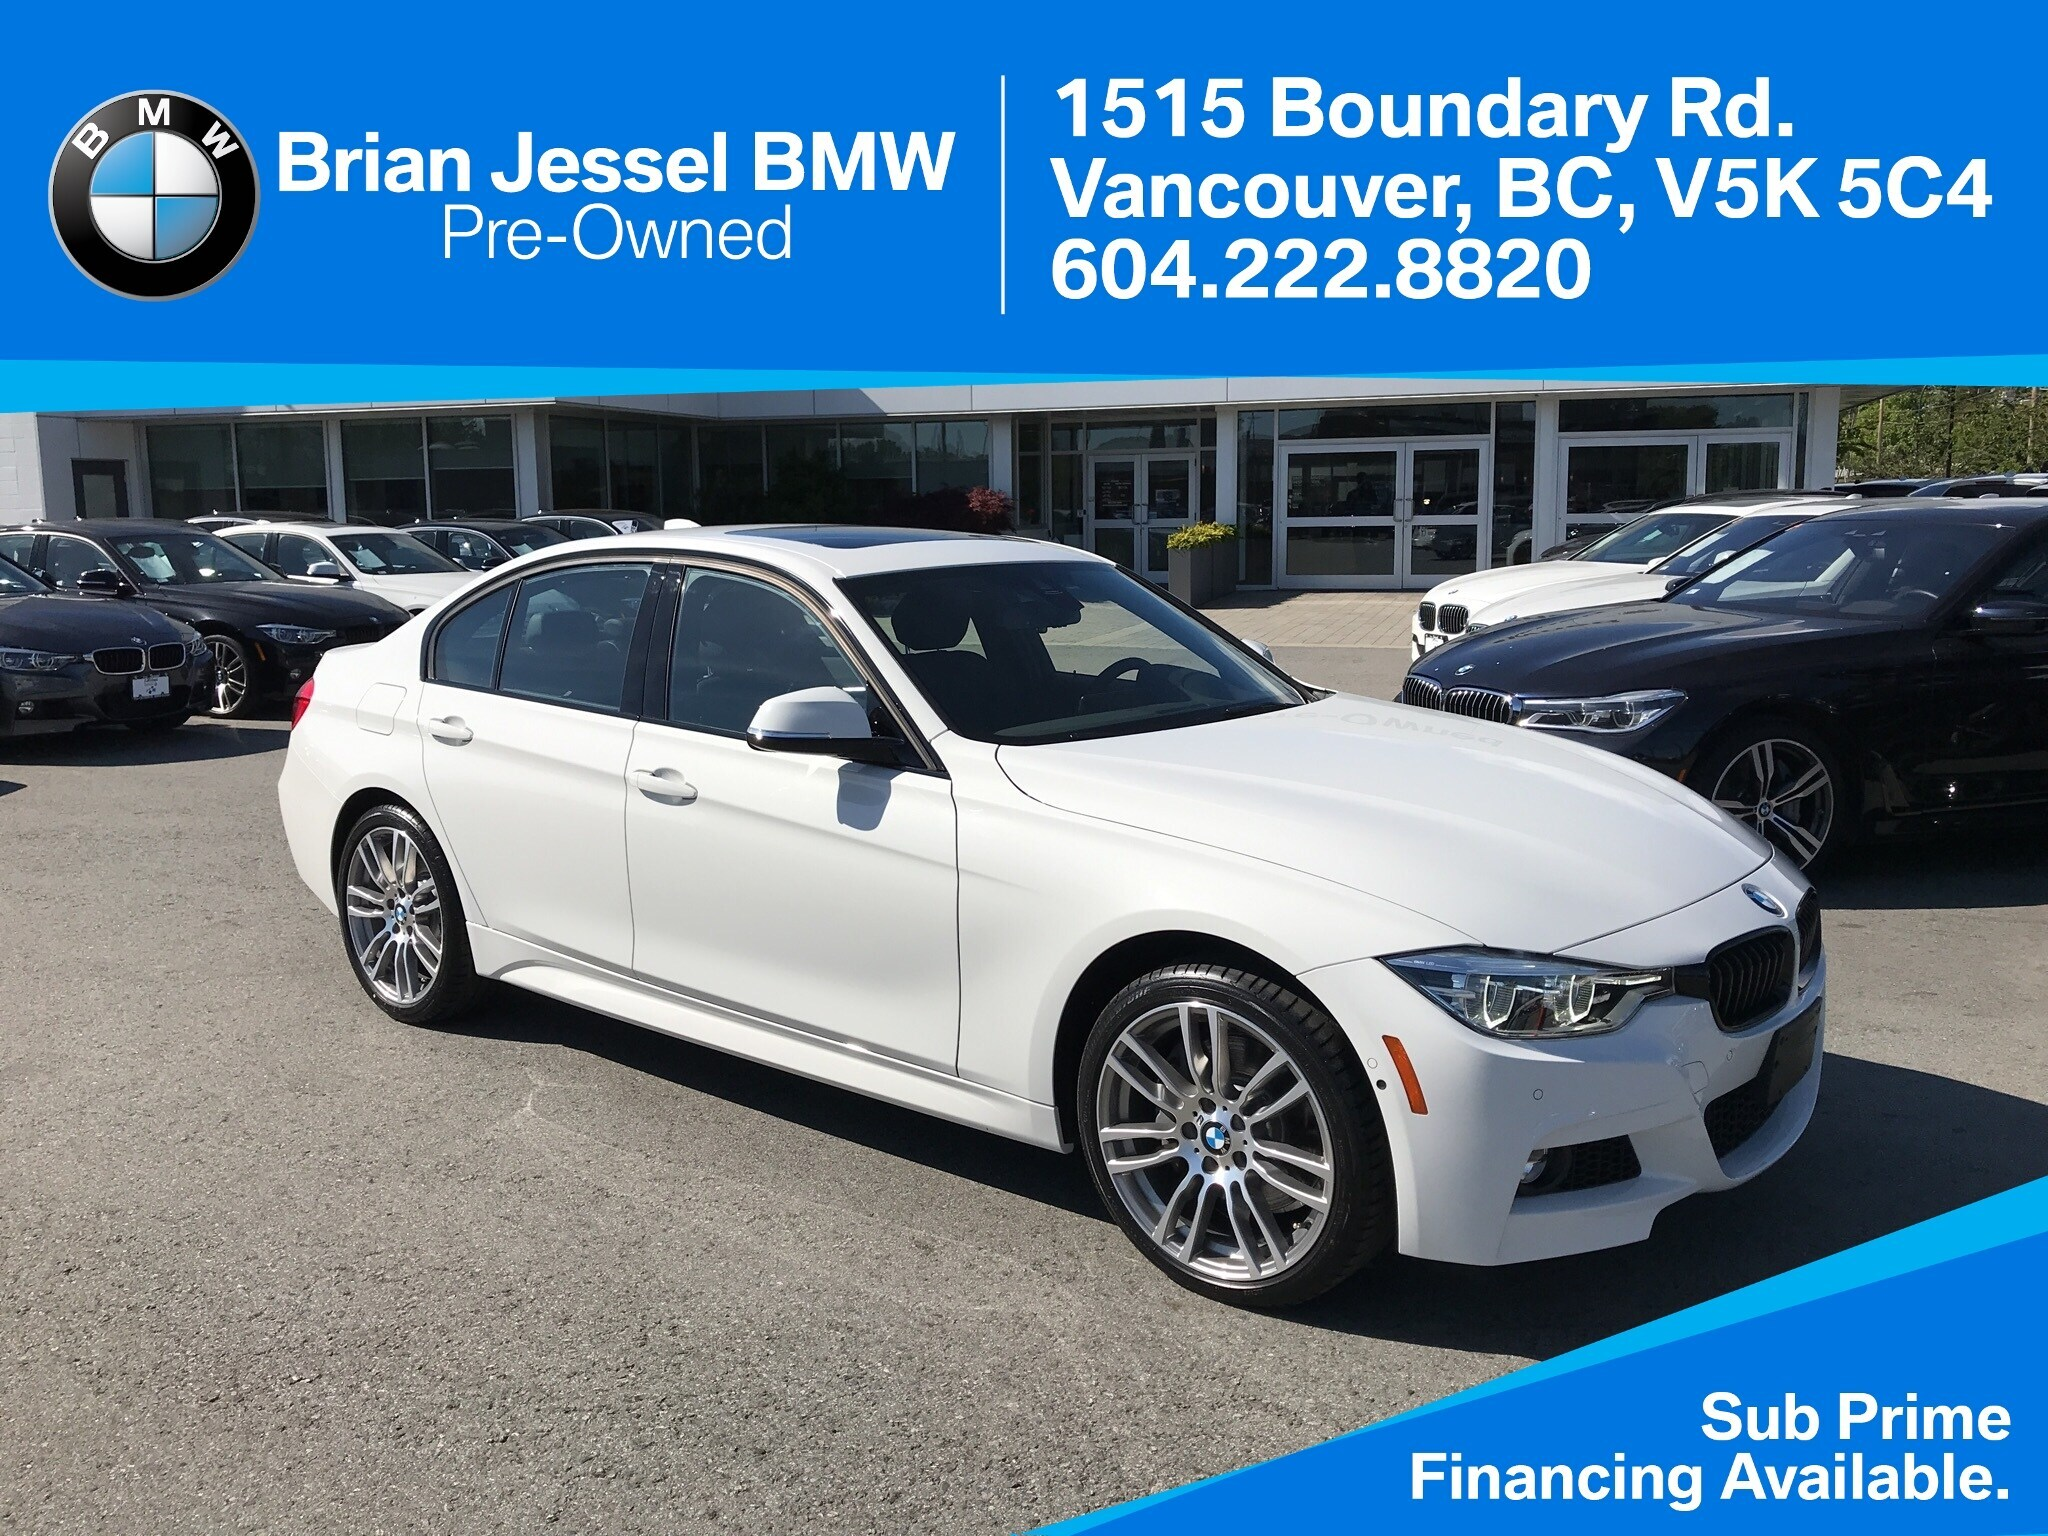 New Used Bmw 3 Series For Sale In Vancouver Autotrader Ca